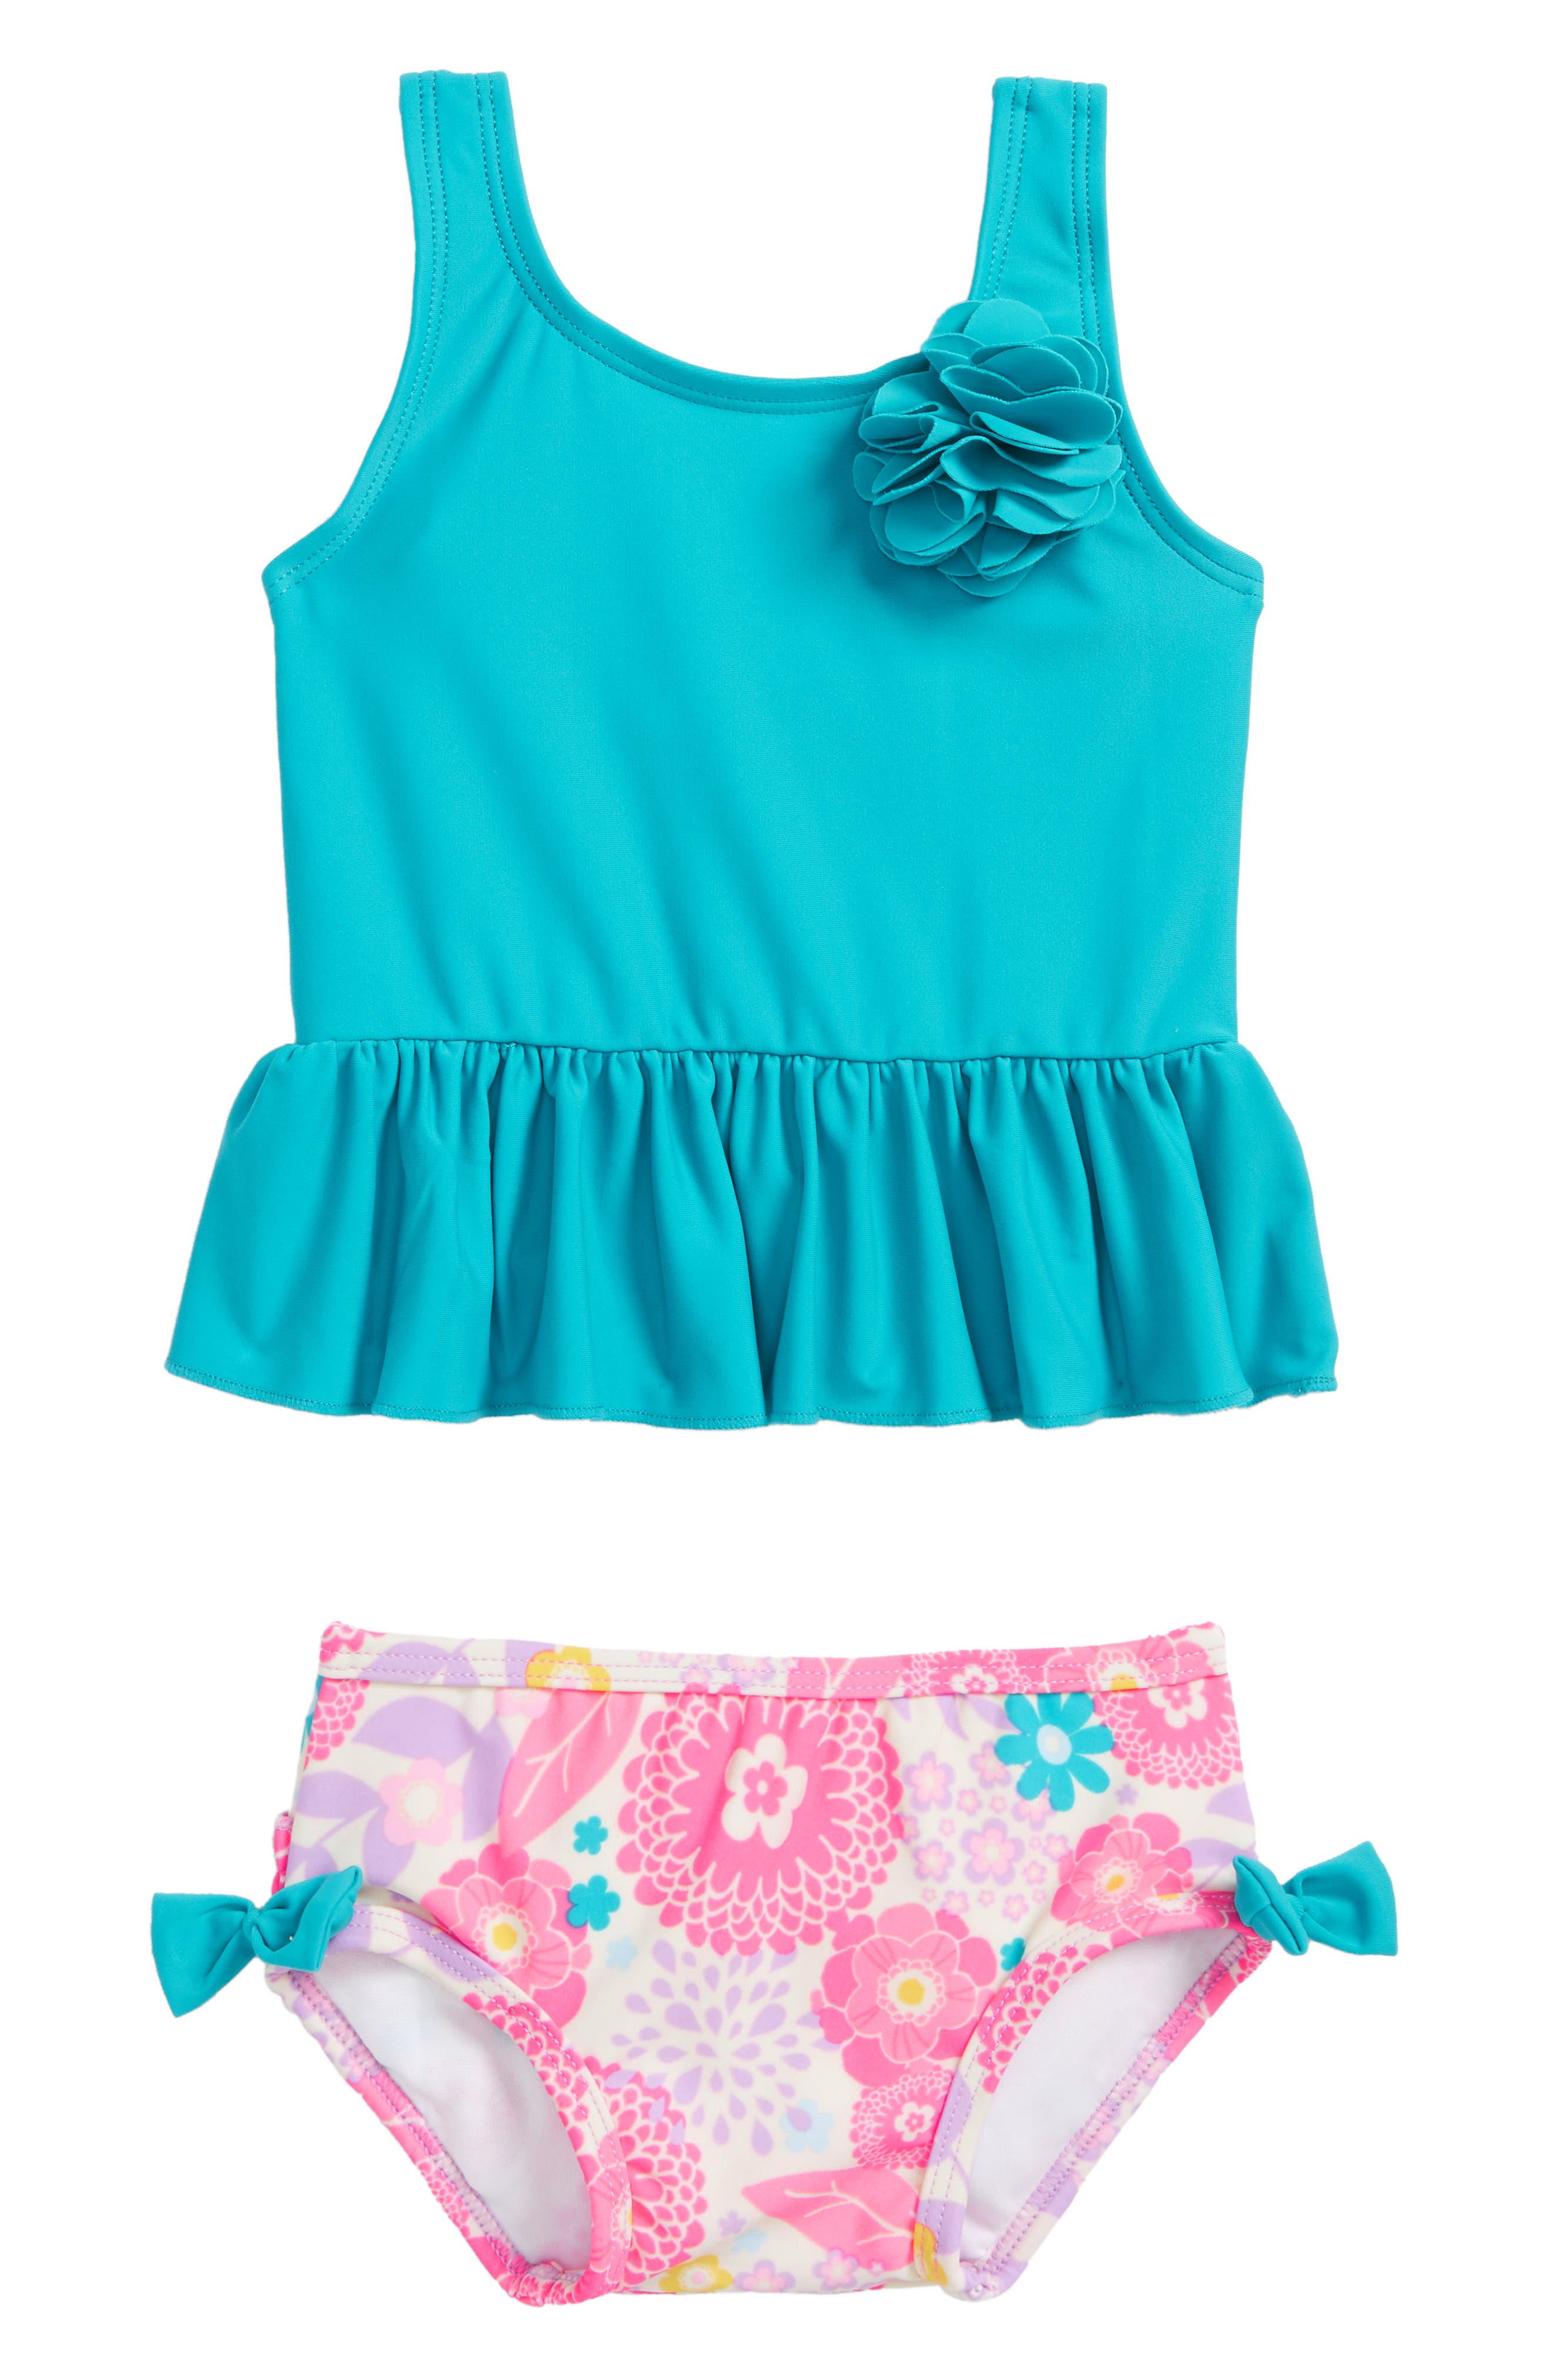 Blooming Peplum Two-Piece Swimsuit,                             Main thumbnail 1, color,                             440